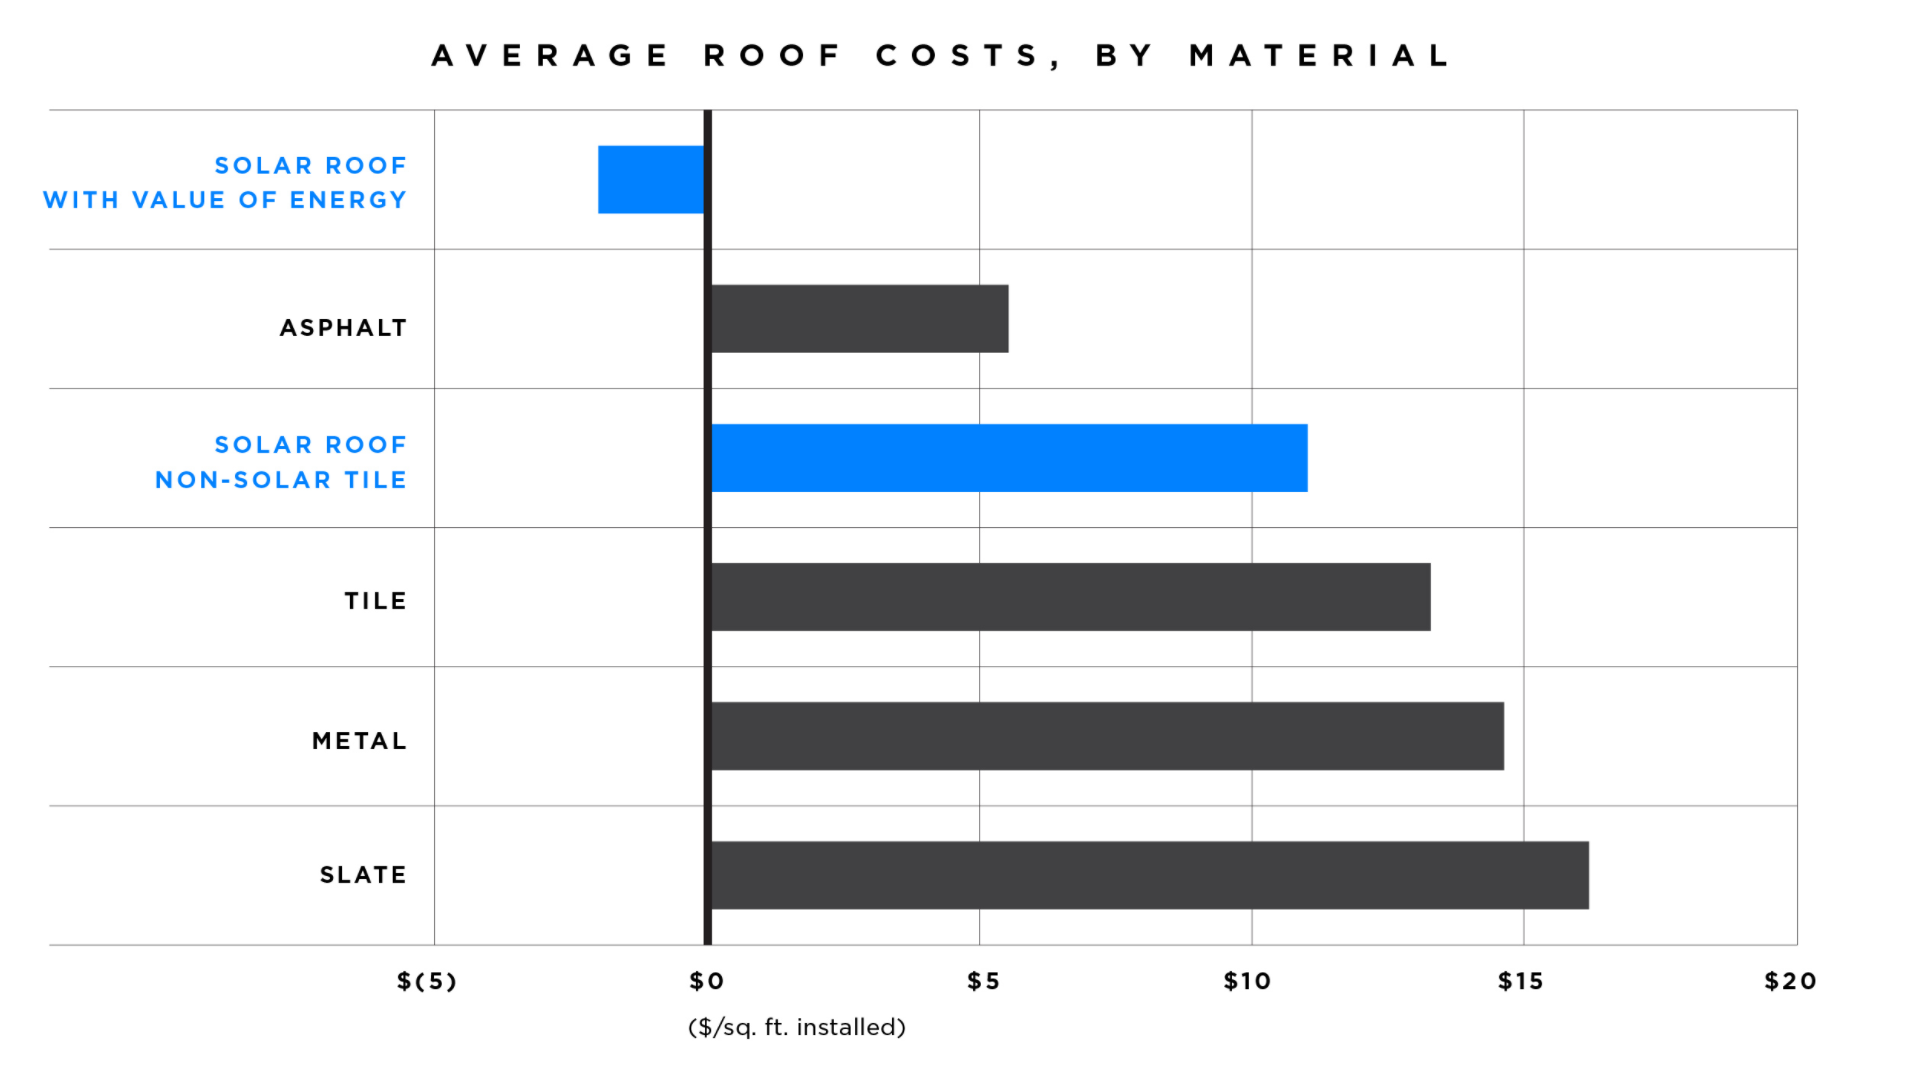 | Source: Tesla | Average Cost of Solar Roof as Compared to Other Roofing Options